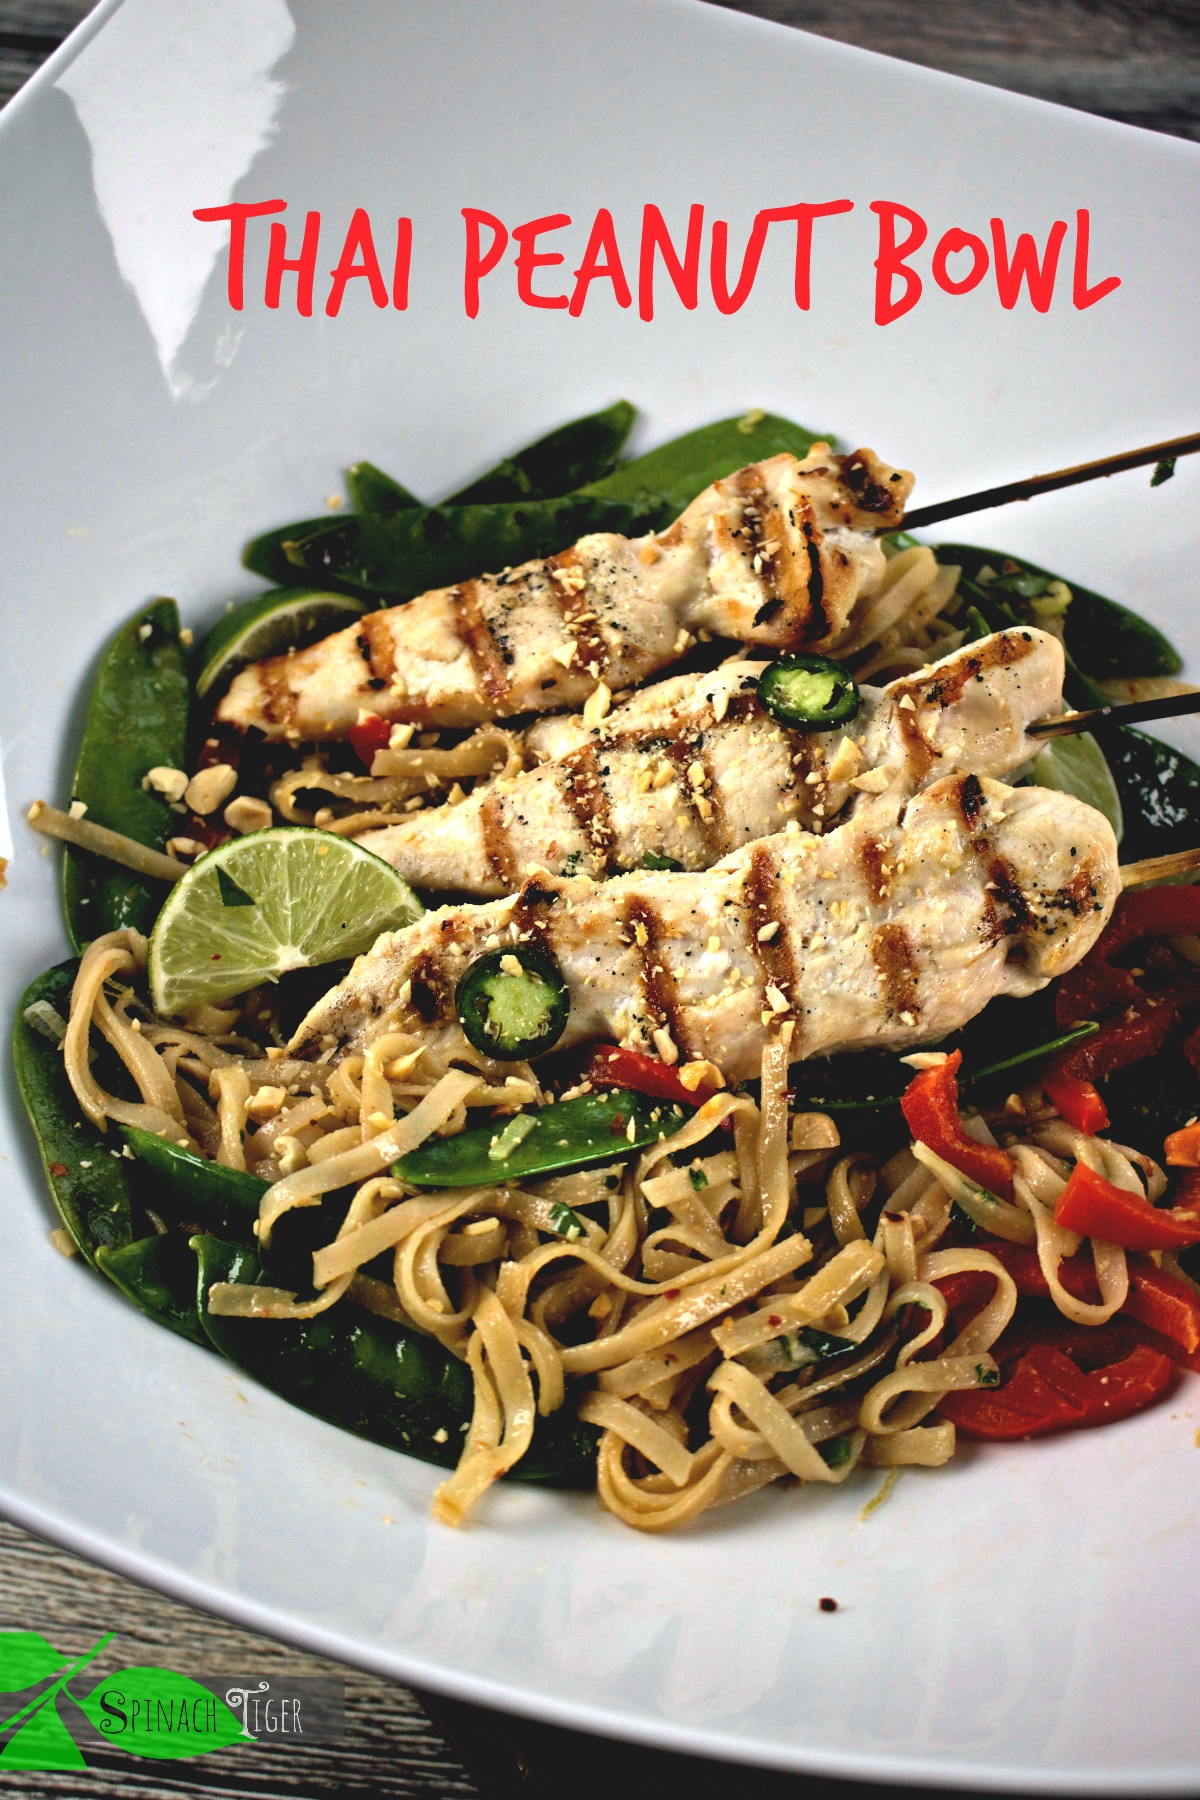 Thai Peanut Noodles with Grilled chicken Skewers from Spinach Tiger